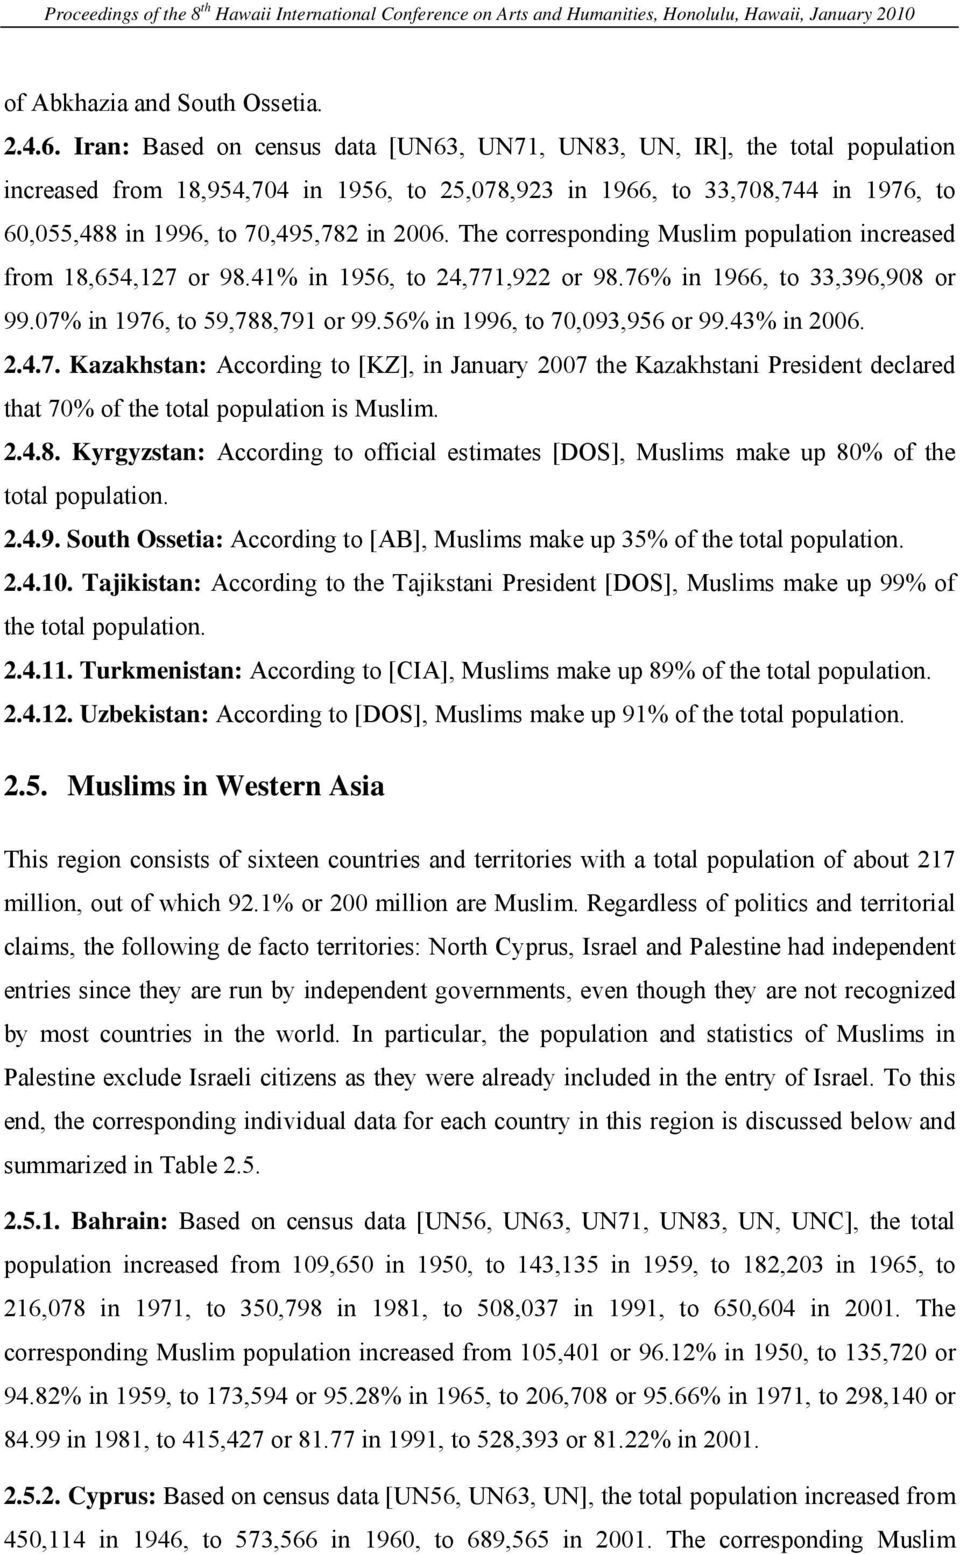 2006. The corresponding Muslim population increased from 18,654,127 or 98.41% in 1956, to 24,771,922 or 98.76% in 1966, to 33,396,908 or 99.07% in 1976, to 59,788,791 or 99.